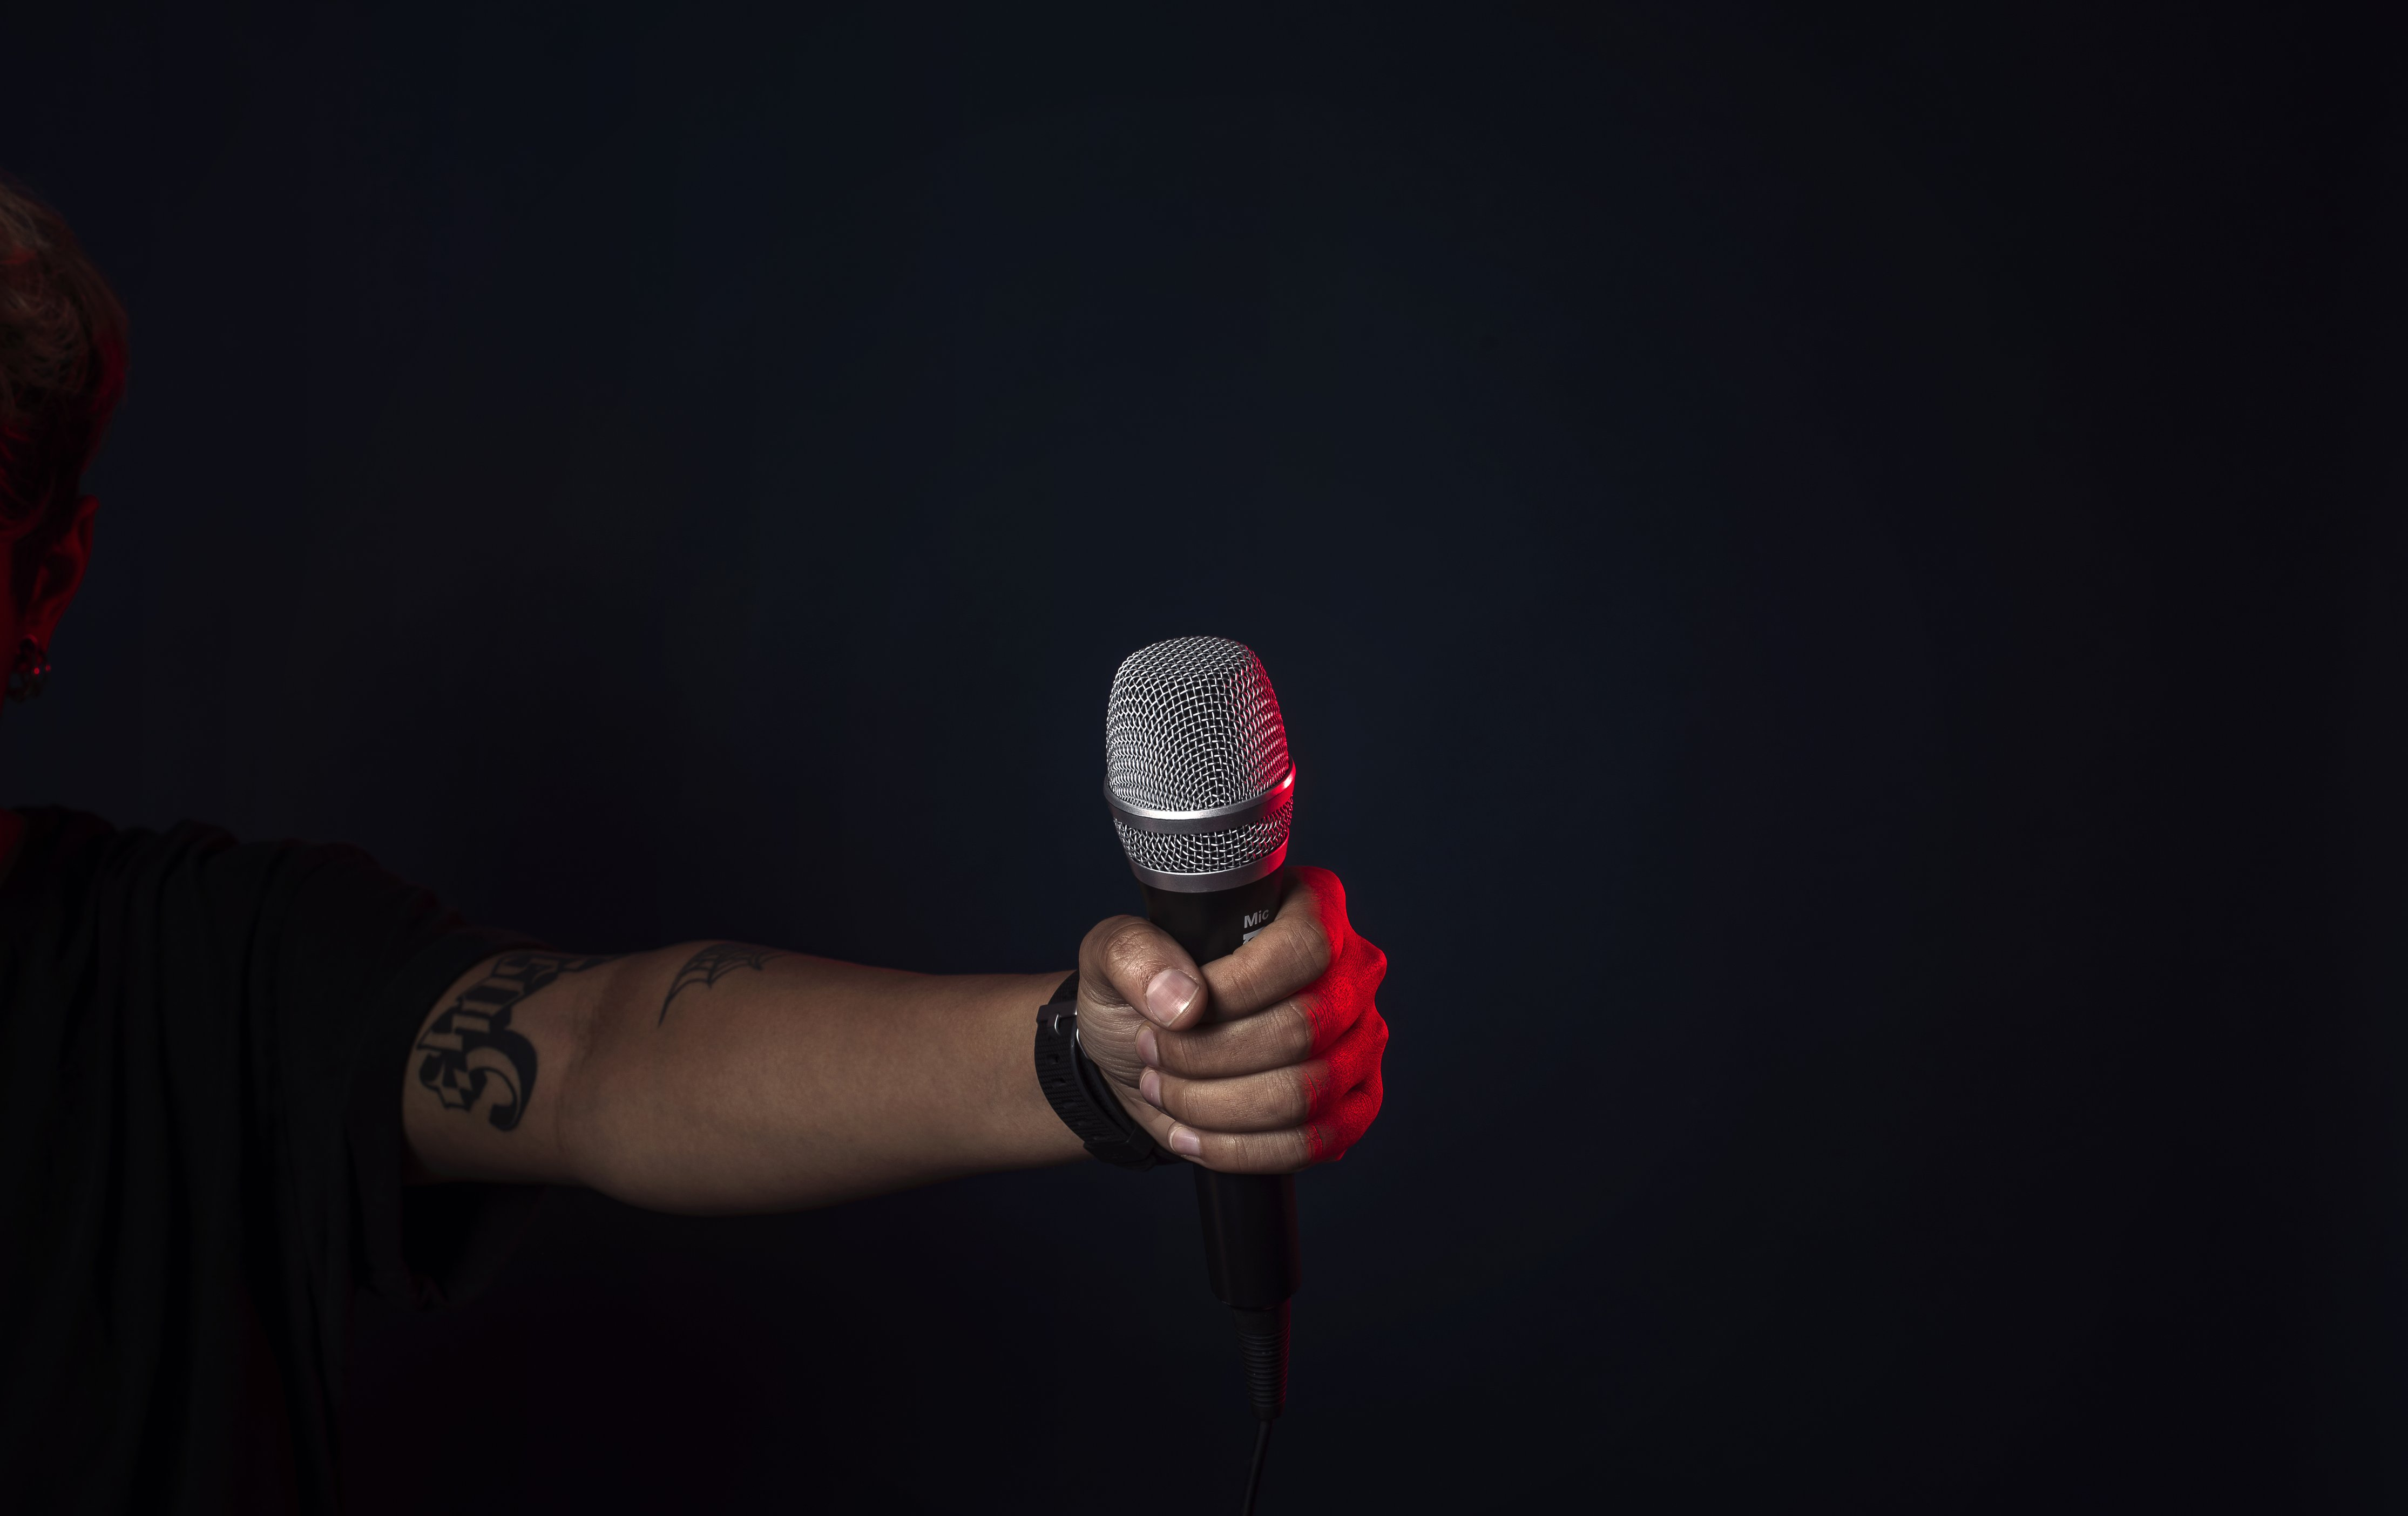 singer-on-stage-holds-mic